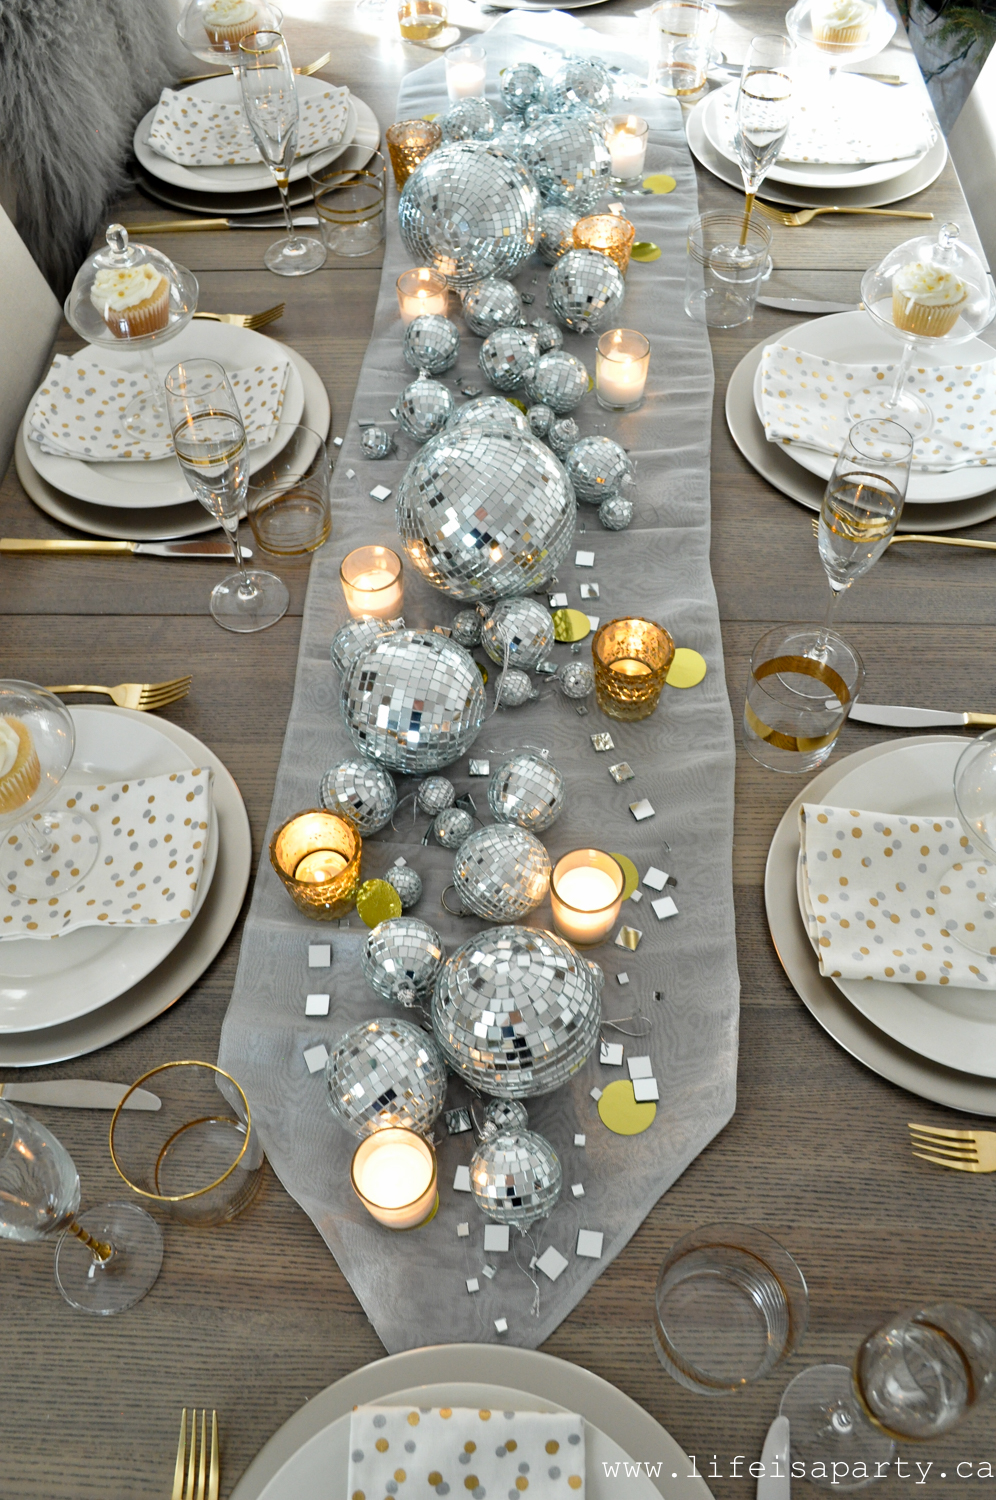 Love this disco ball New Year's Eve table #disco #discoball #newyearseve #newyearseveparty